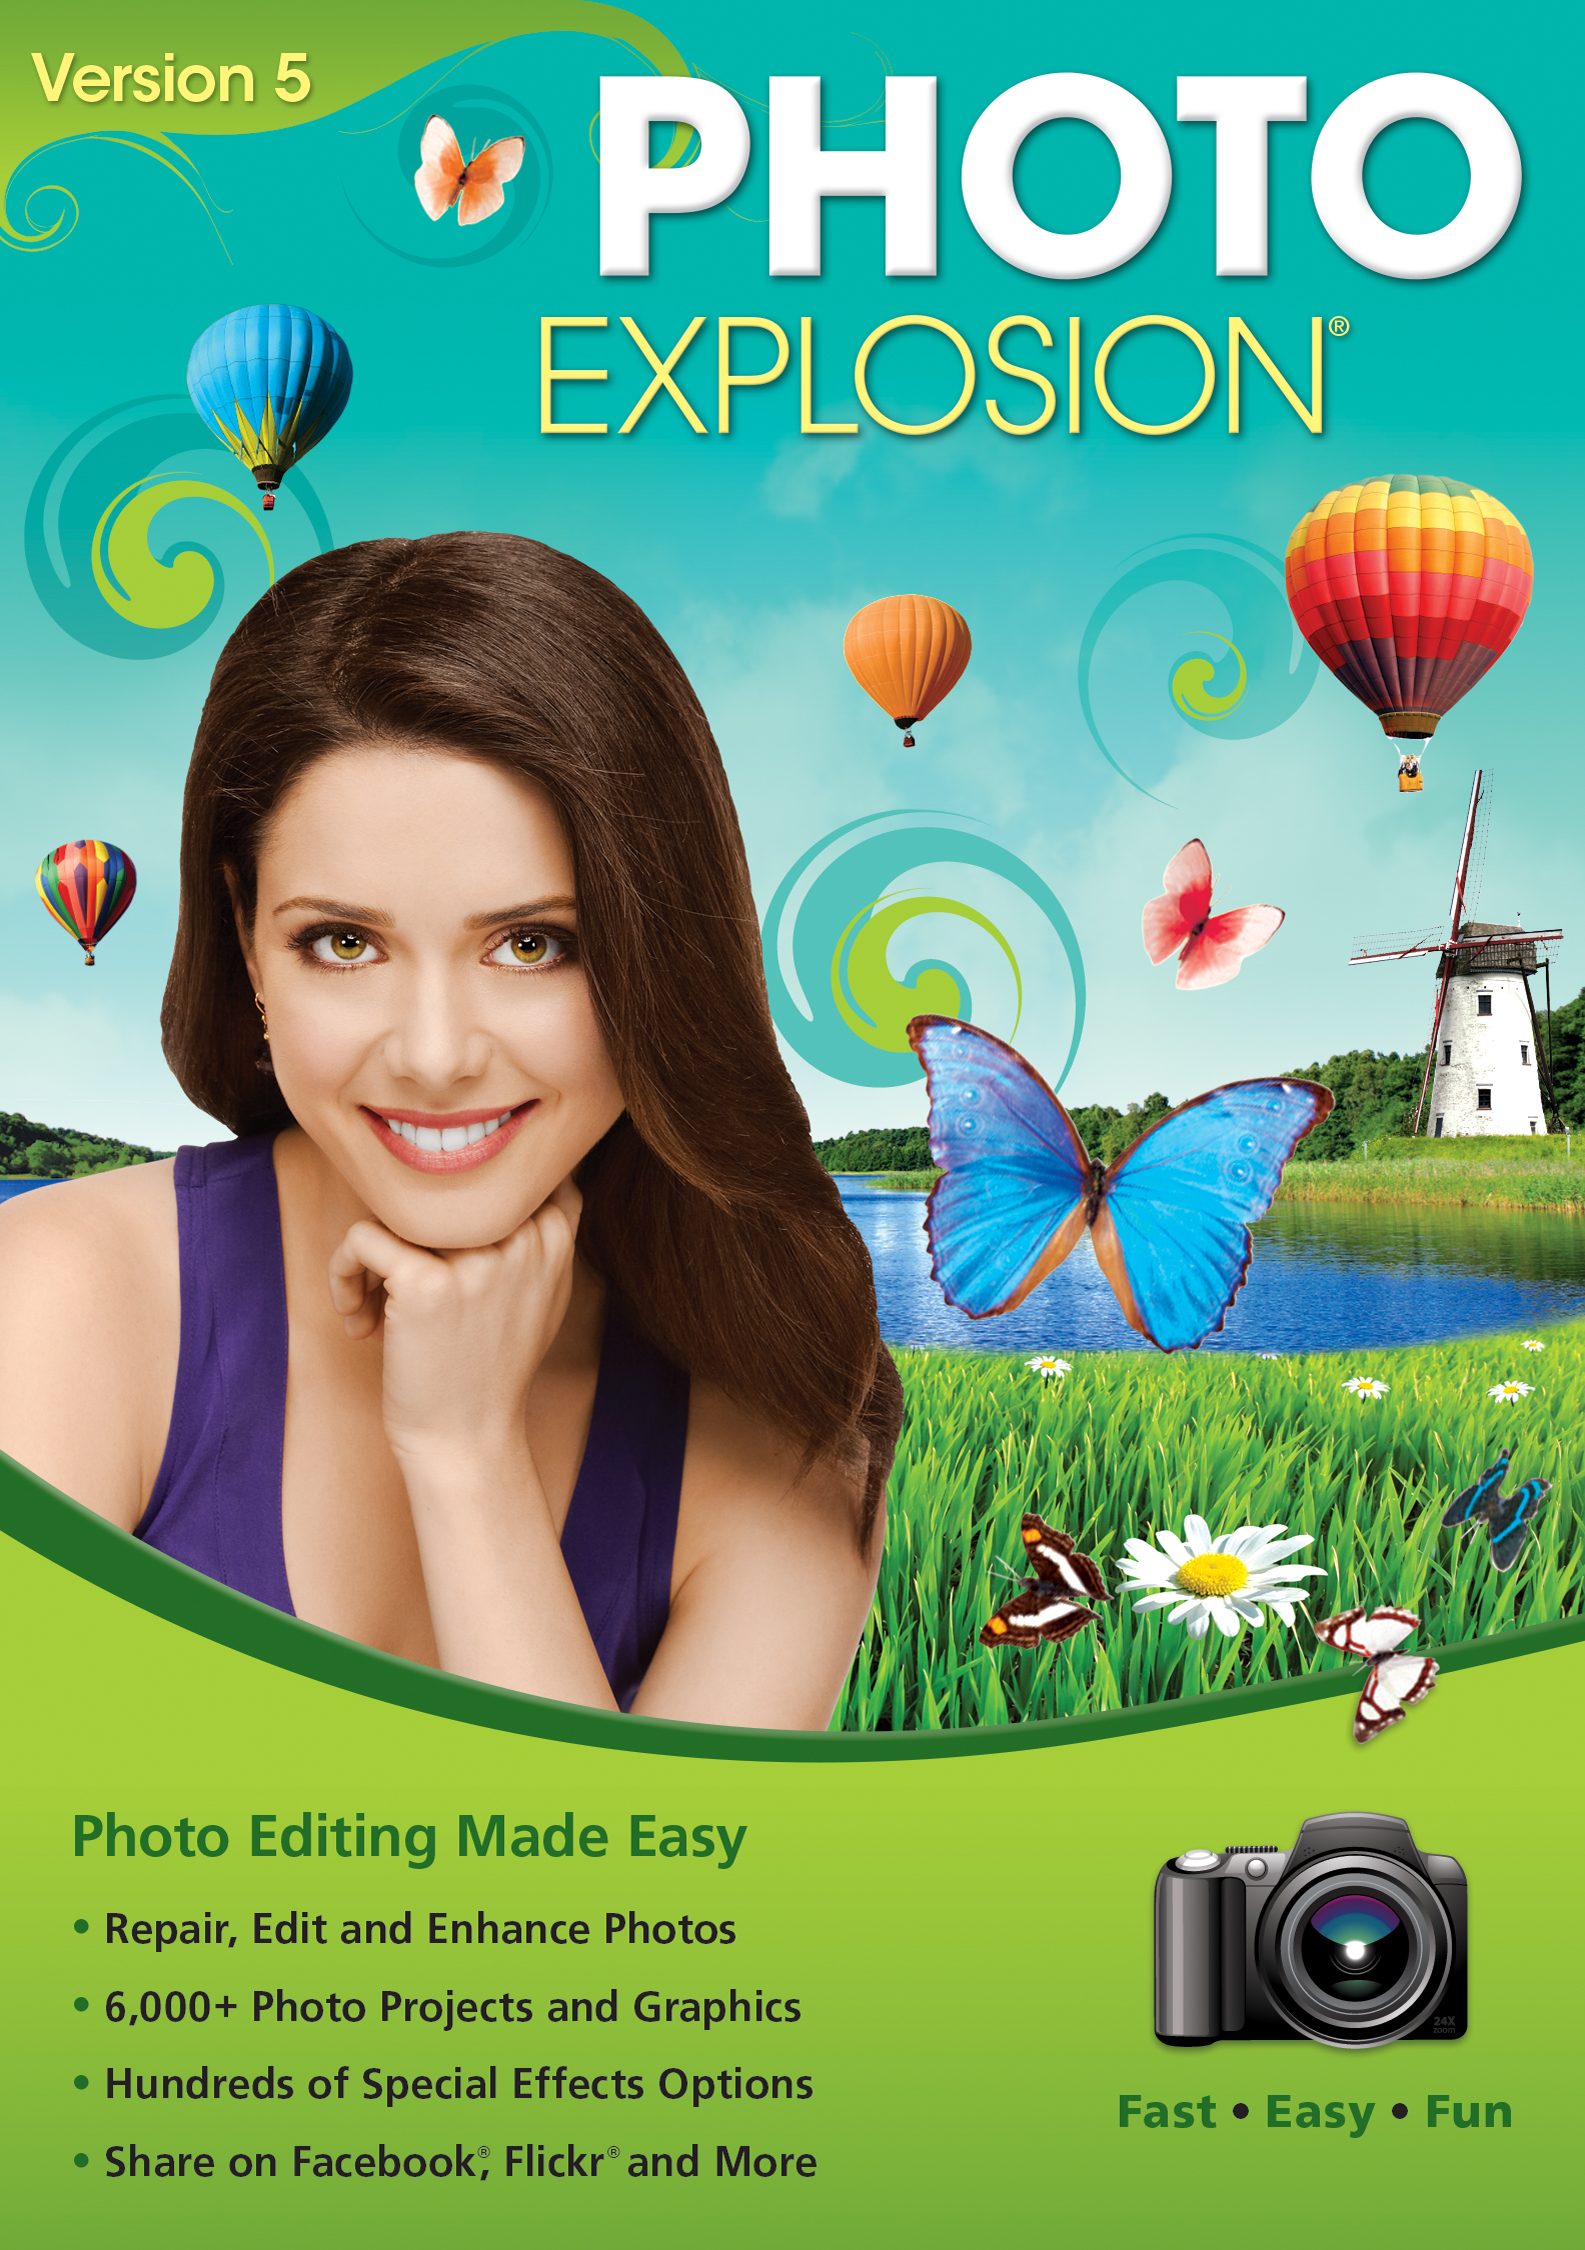 photo explosion software - 5